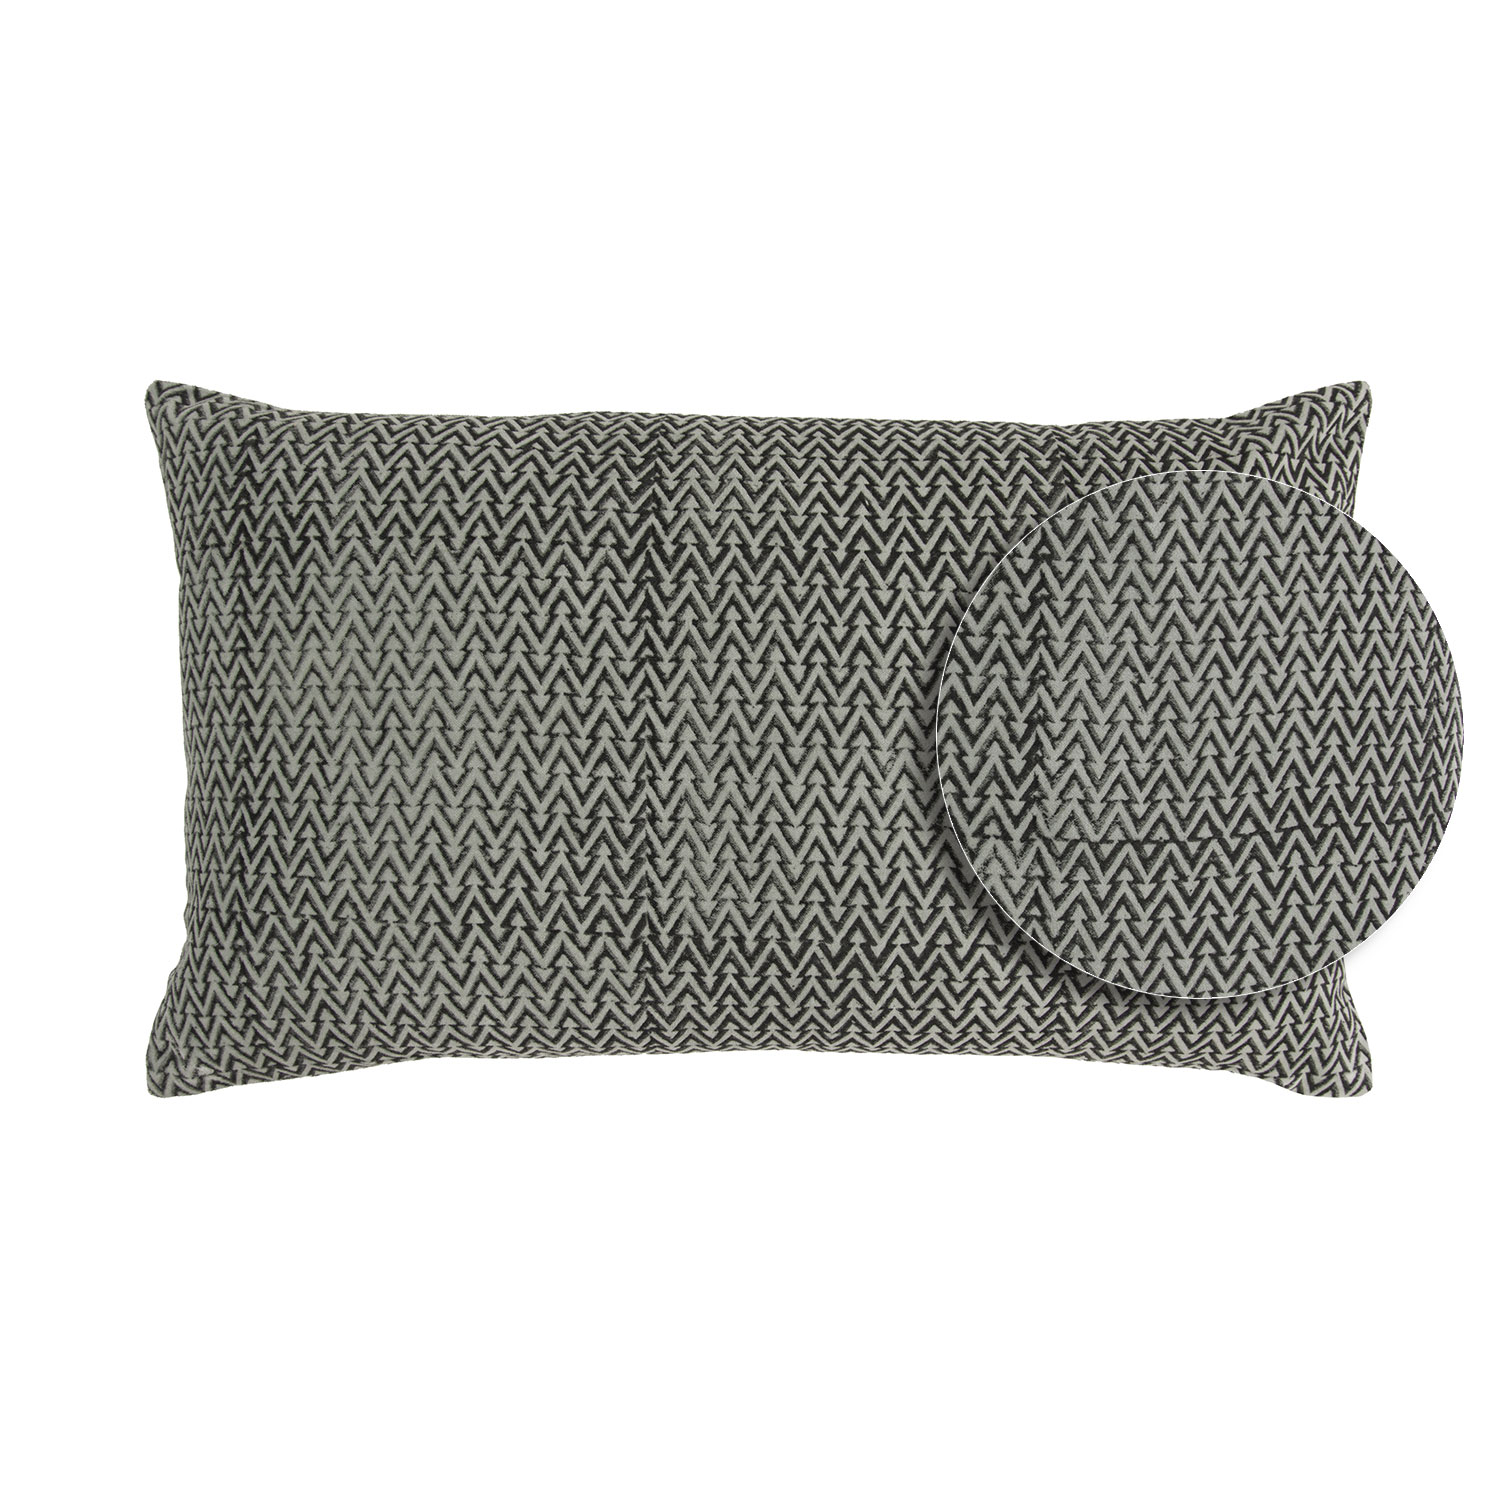 Coussin  en coton ciment 30 x 50 (photo)